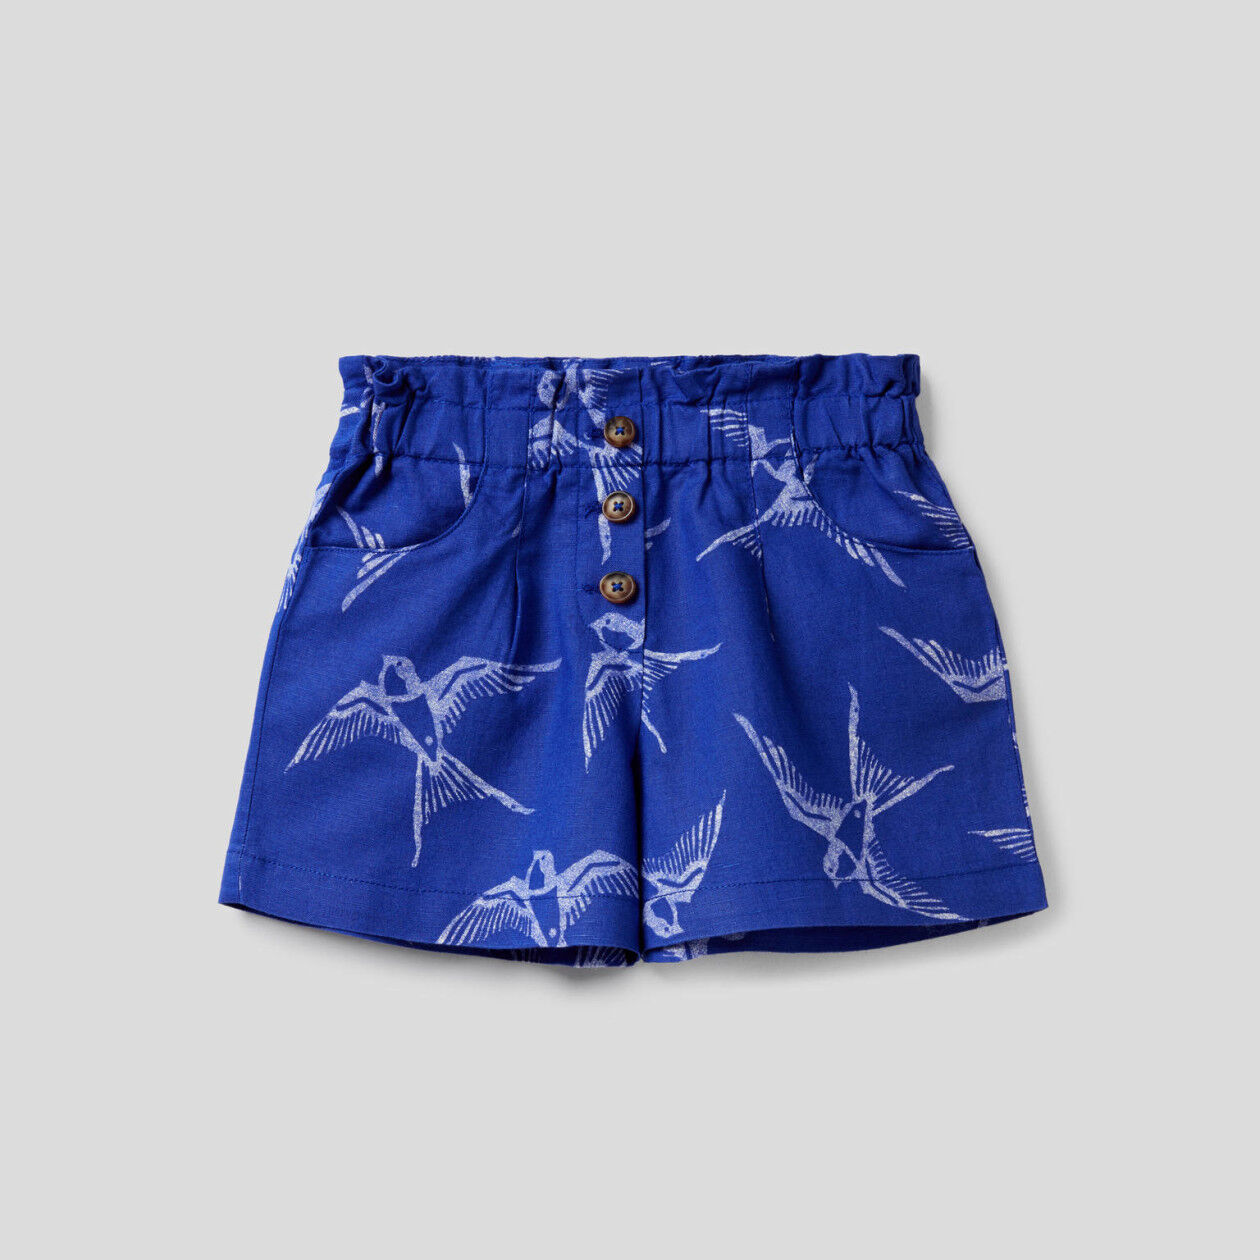 Printed shorts in cotton linen blend